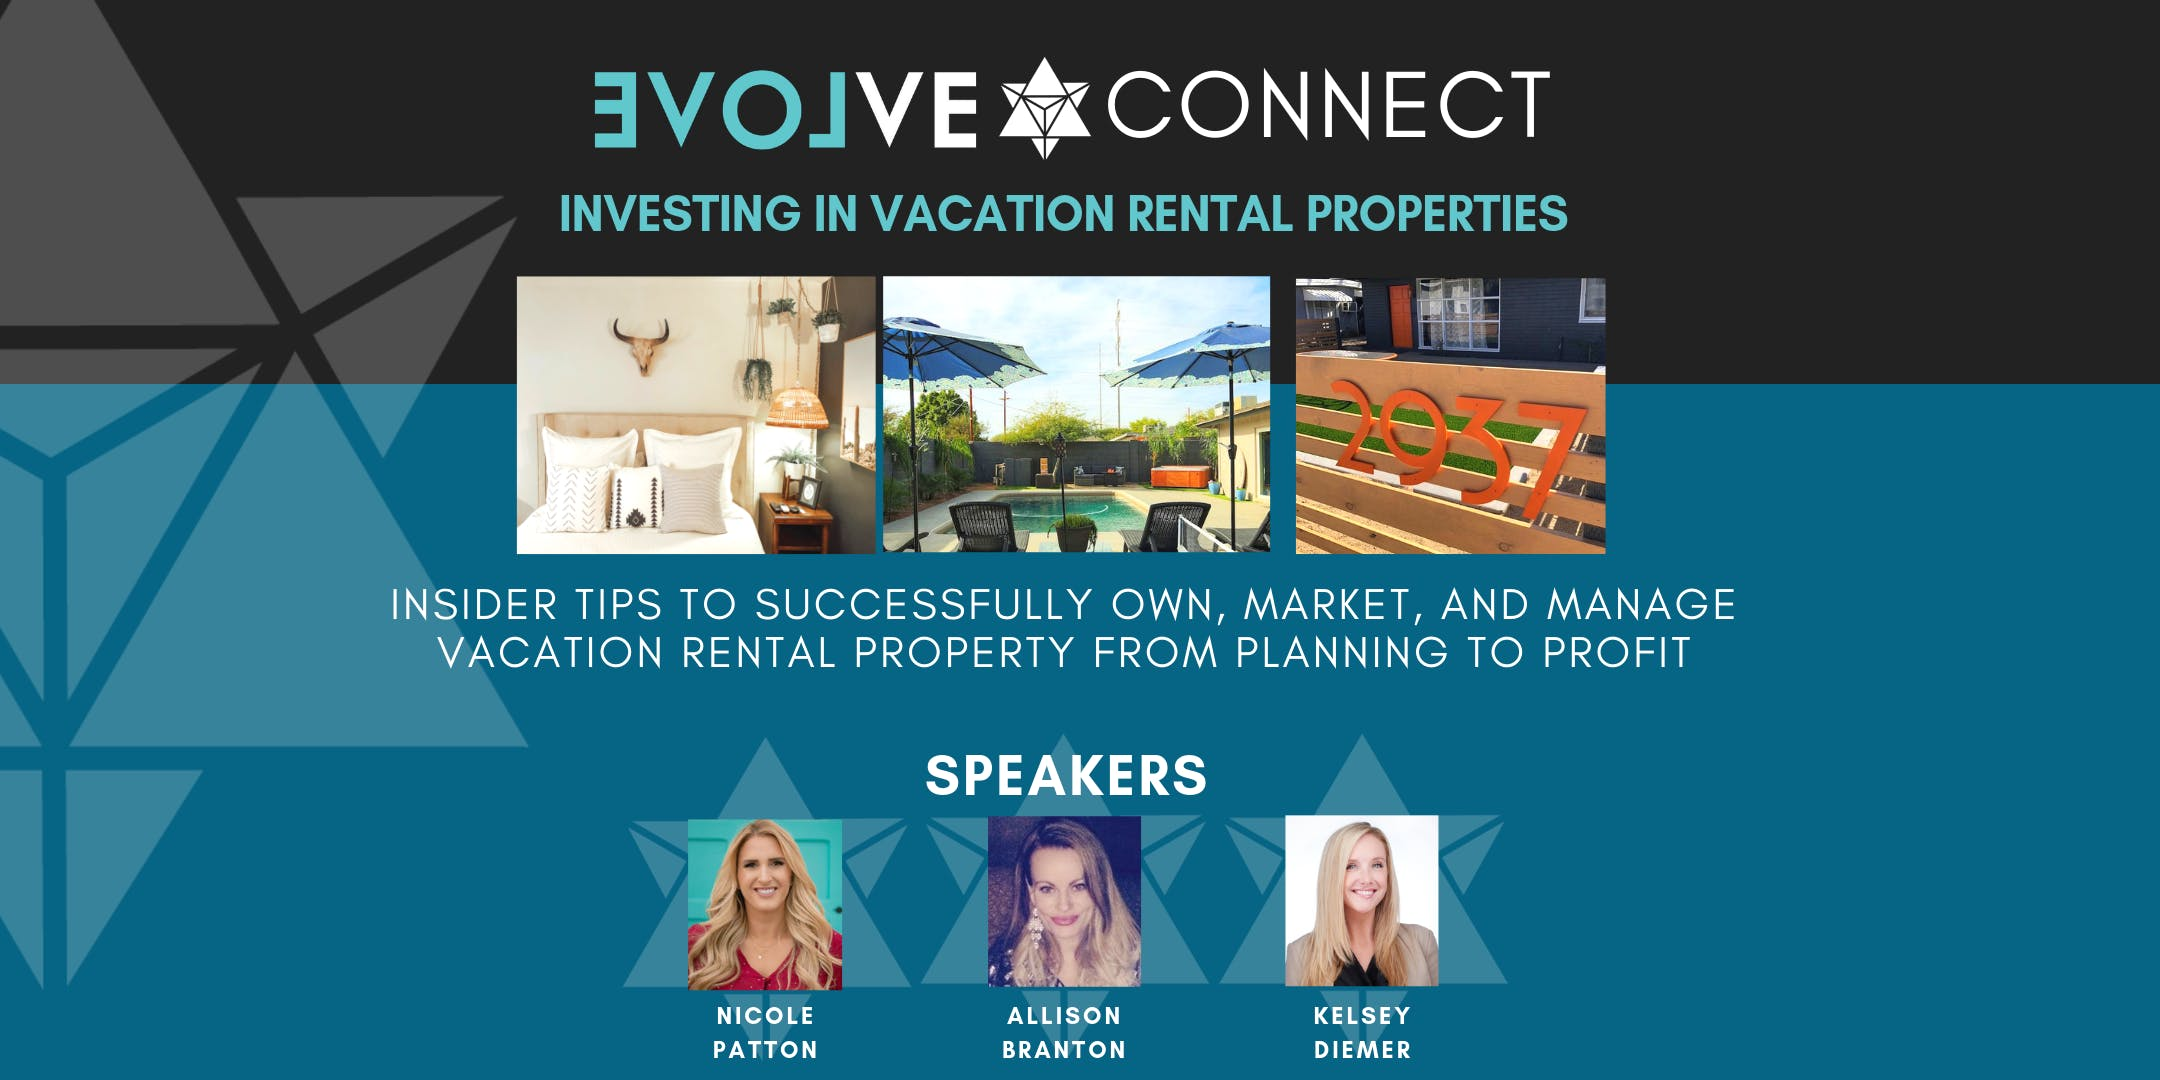 EVOLVE CONNECT EVENT | How to Invest in Vacation Rental Properties